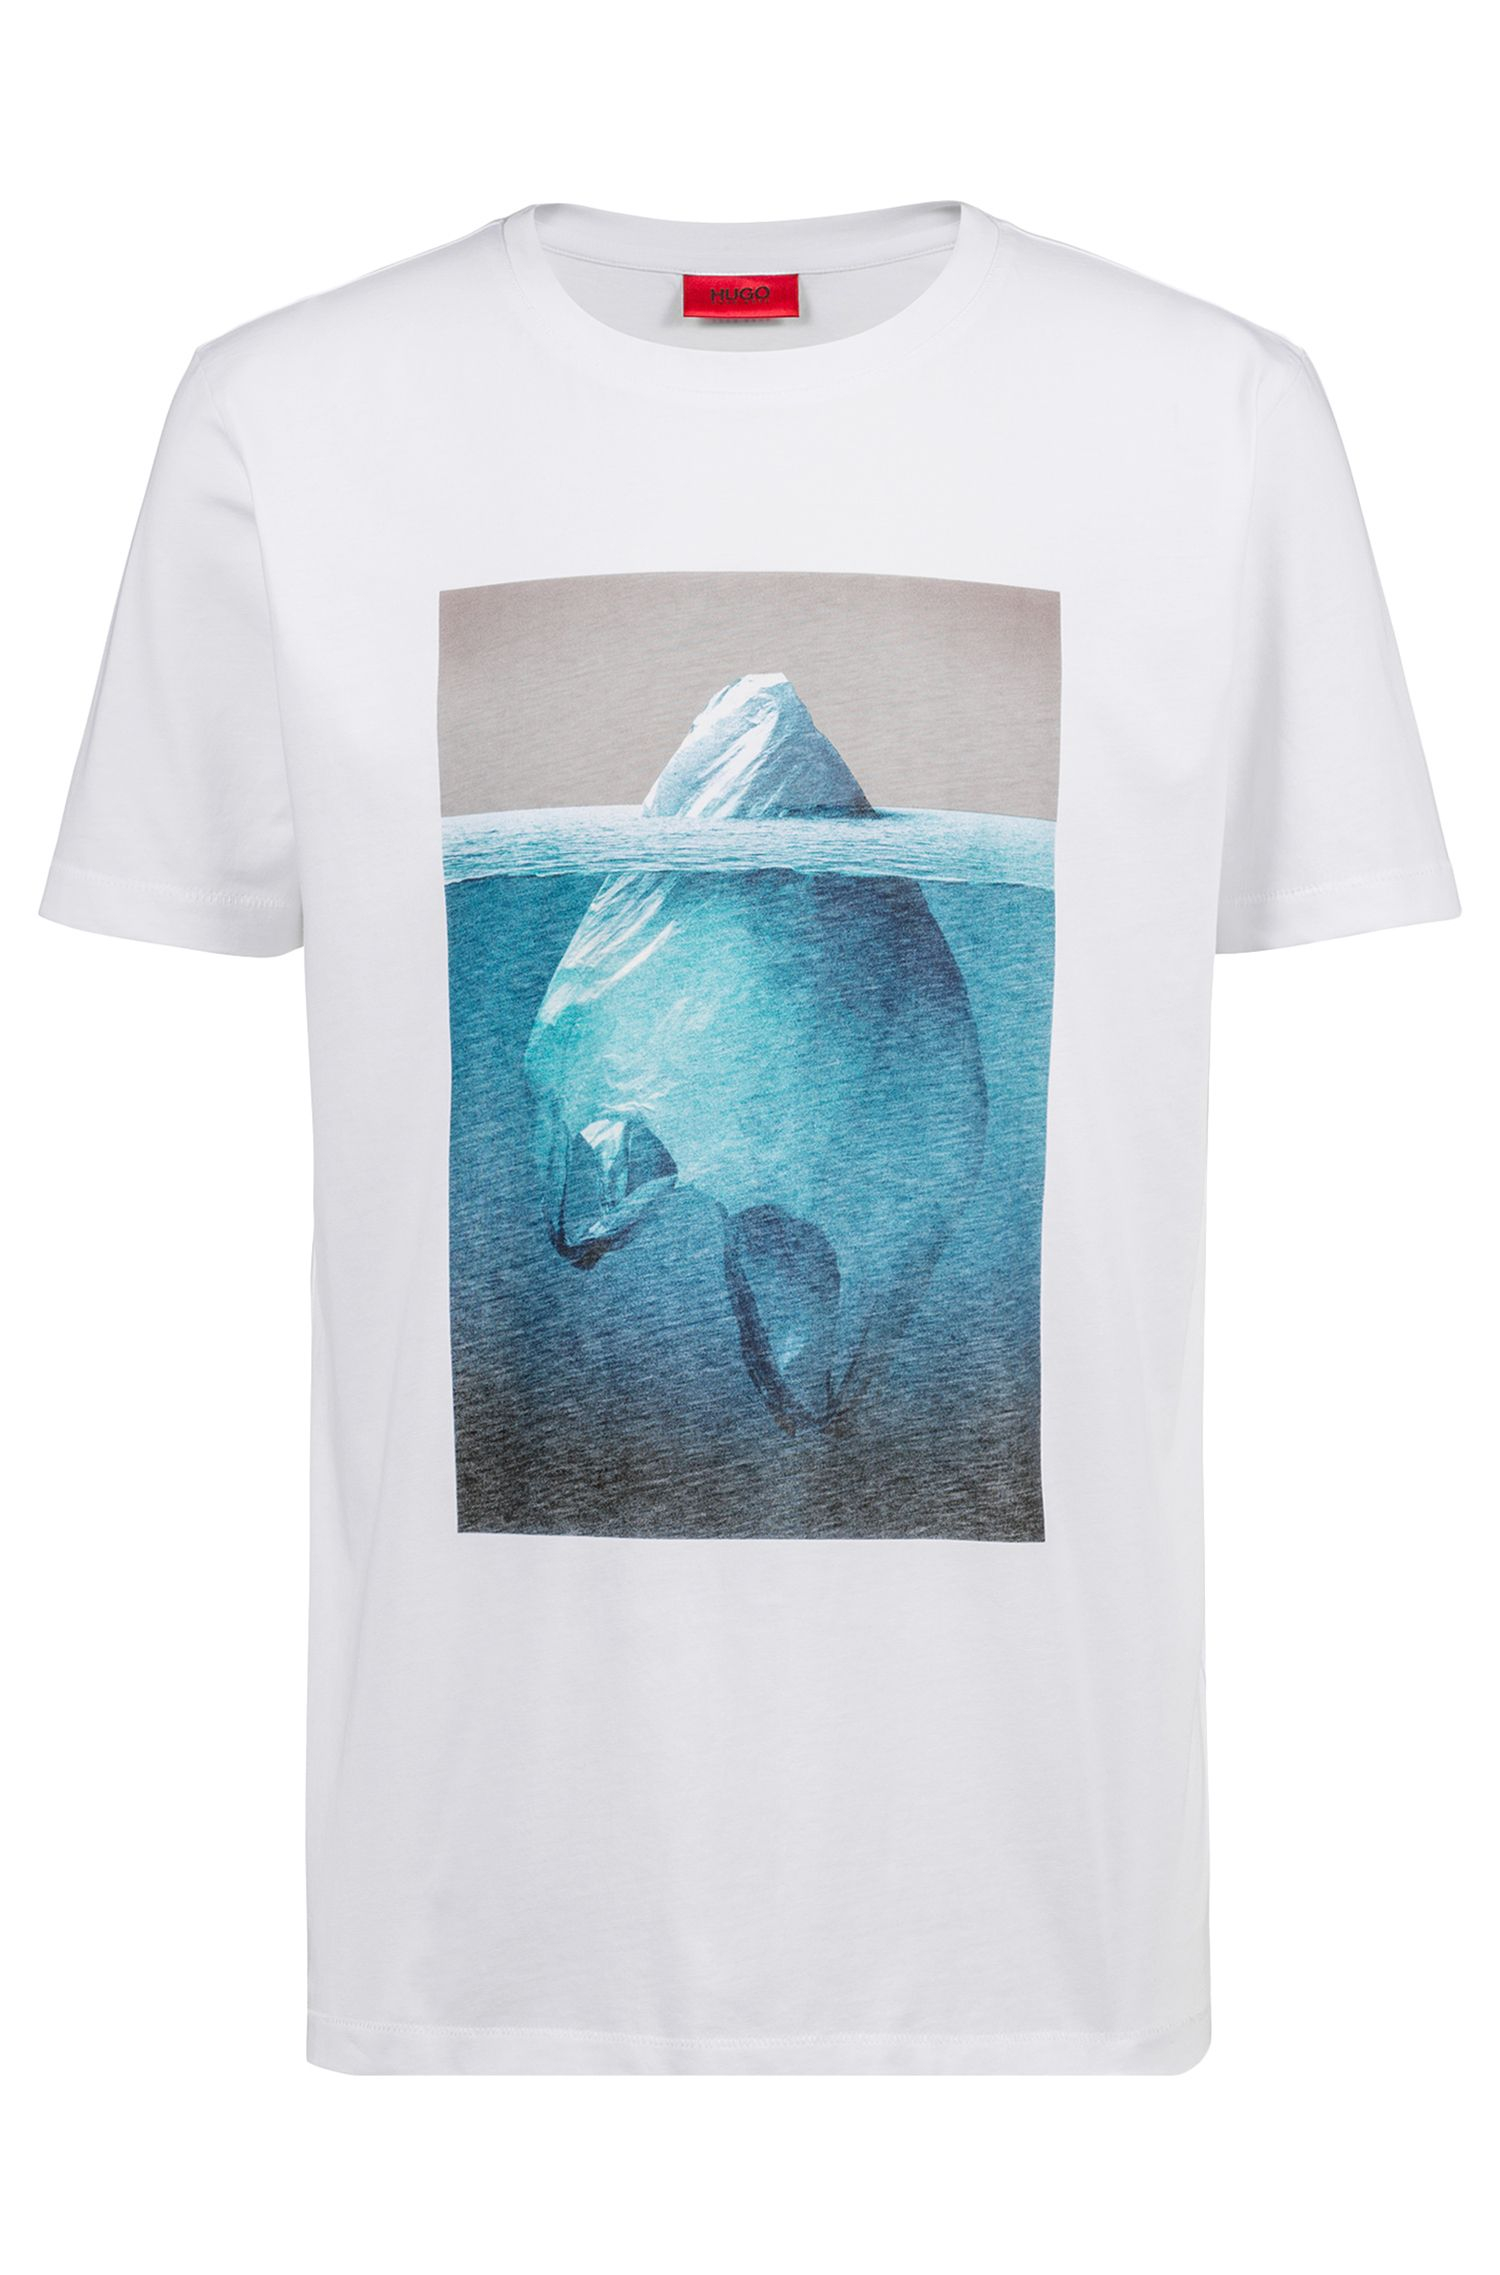 Relaxed-fit cotton T-shirt with iceberg graphic